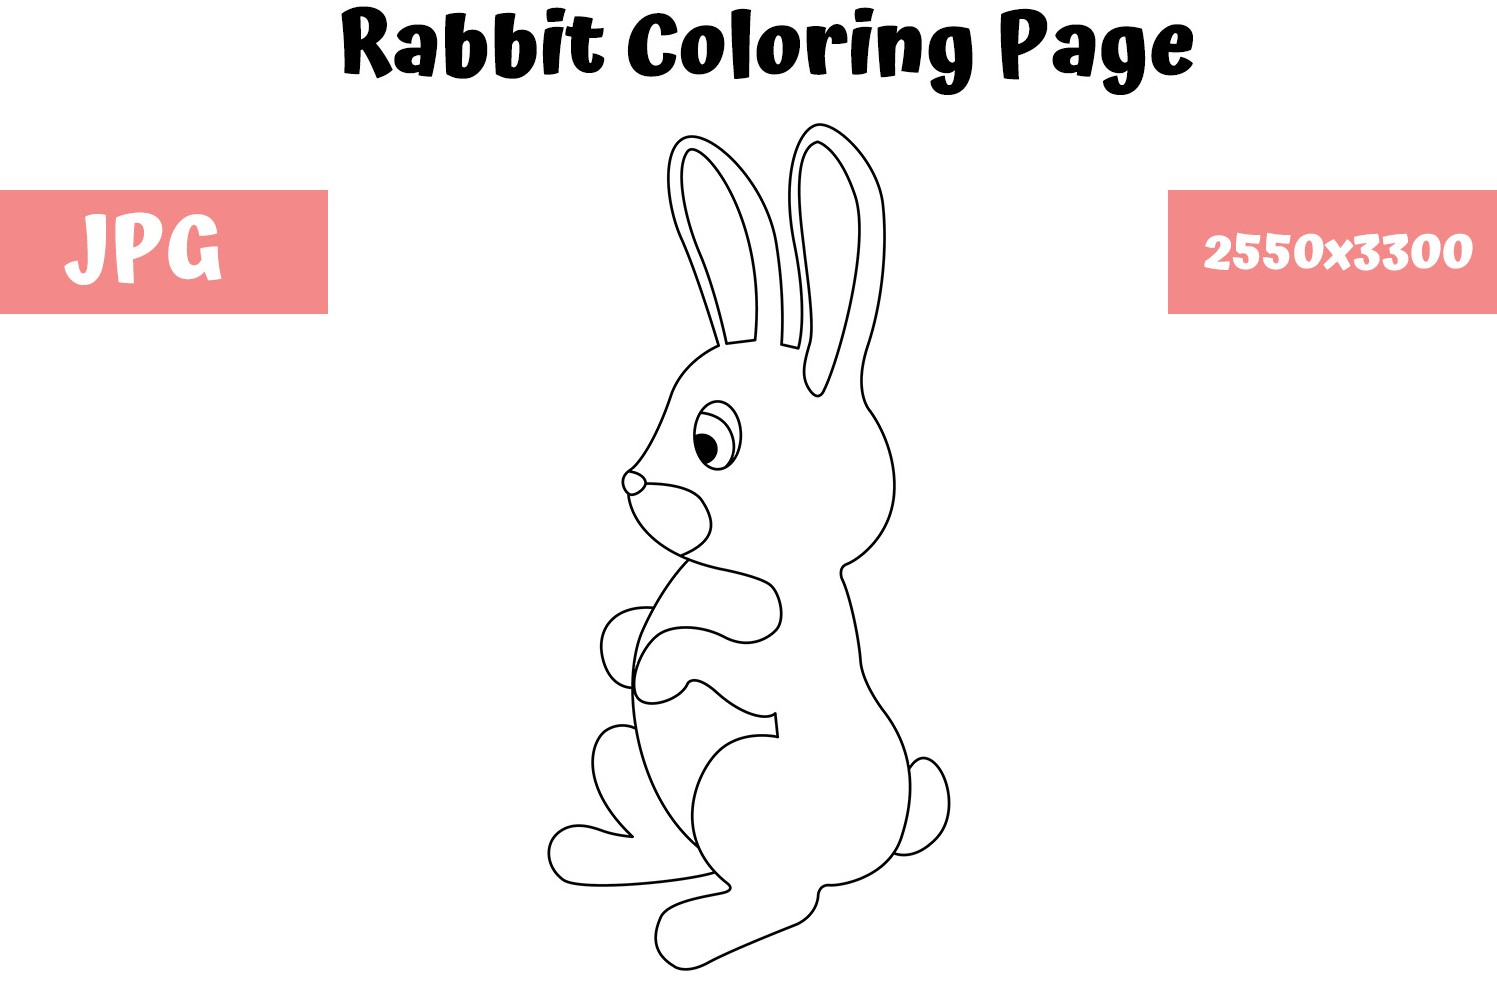 Download Free Rabbit Coloring Page For Kids Graphic By Mybeautifulfiles for Cricut Explore, Silhouette and other cutting machines.